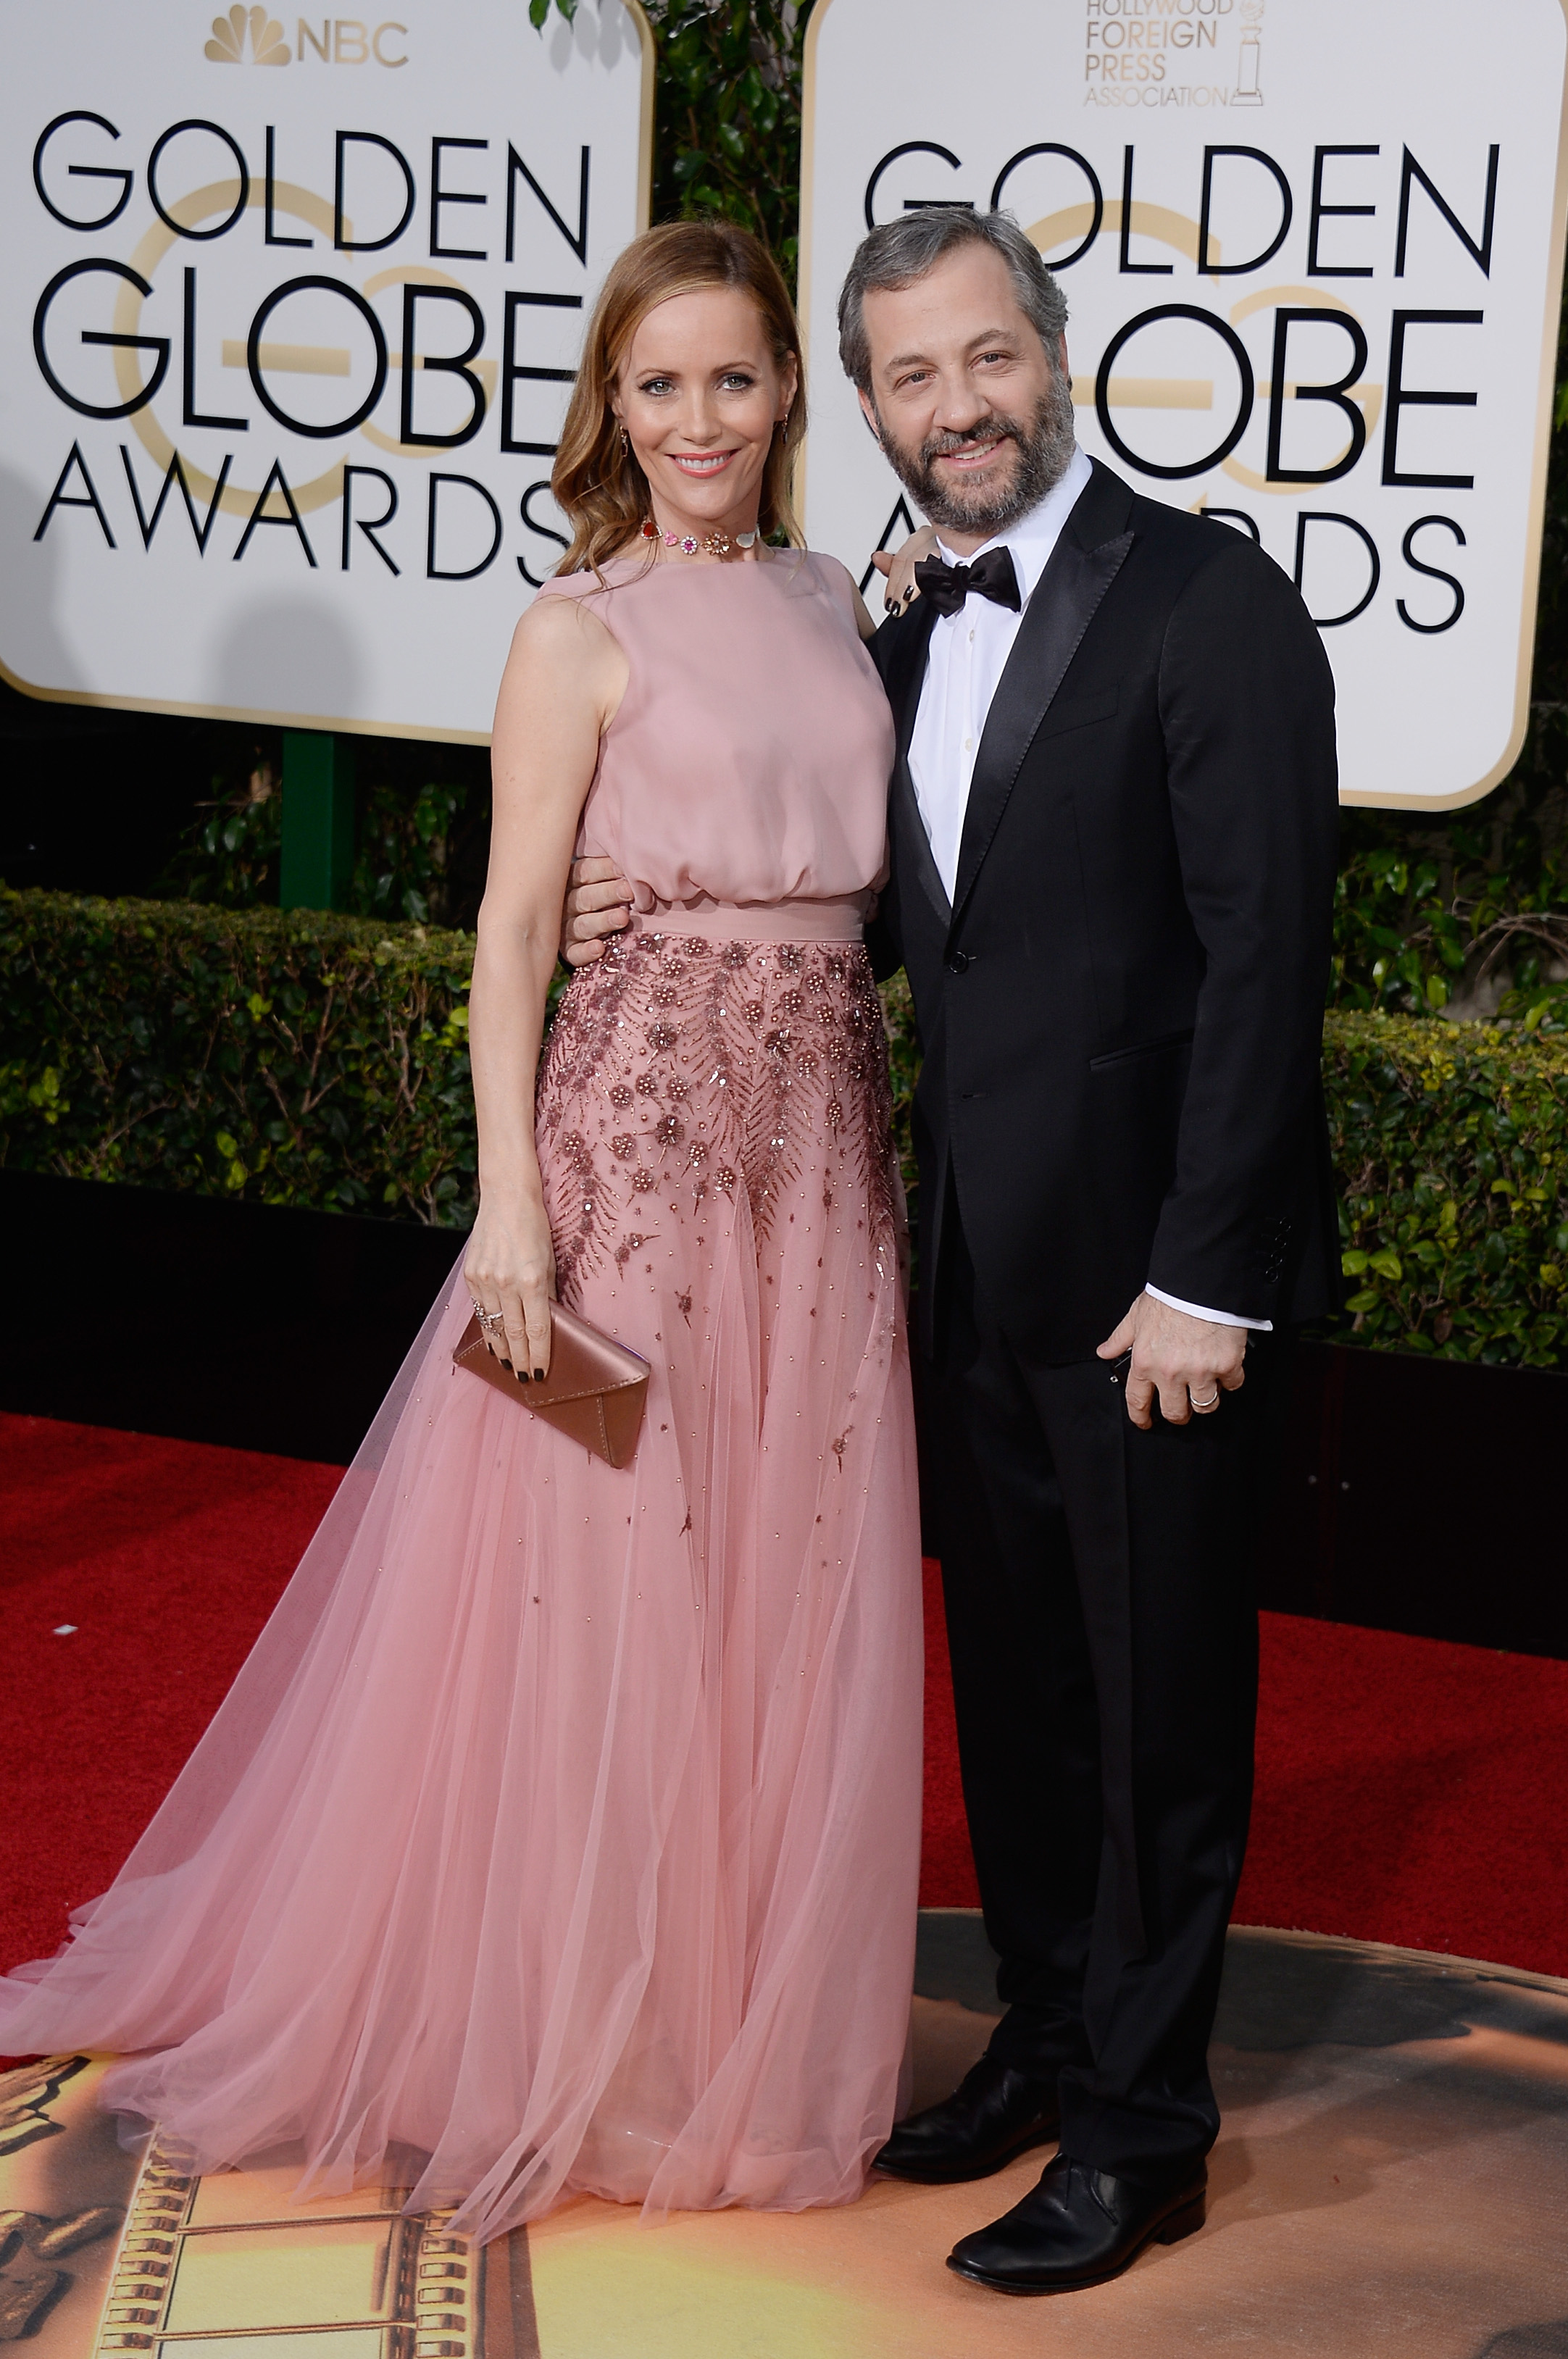 Leslie Mann and Judd Apatow arrive to the 73rd Annual Golden Globe Awards on Jan. 10, 2016 in Beverly Hills.